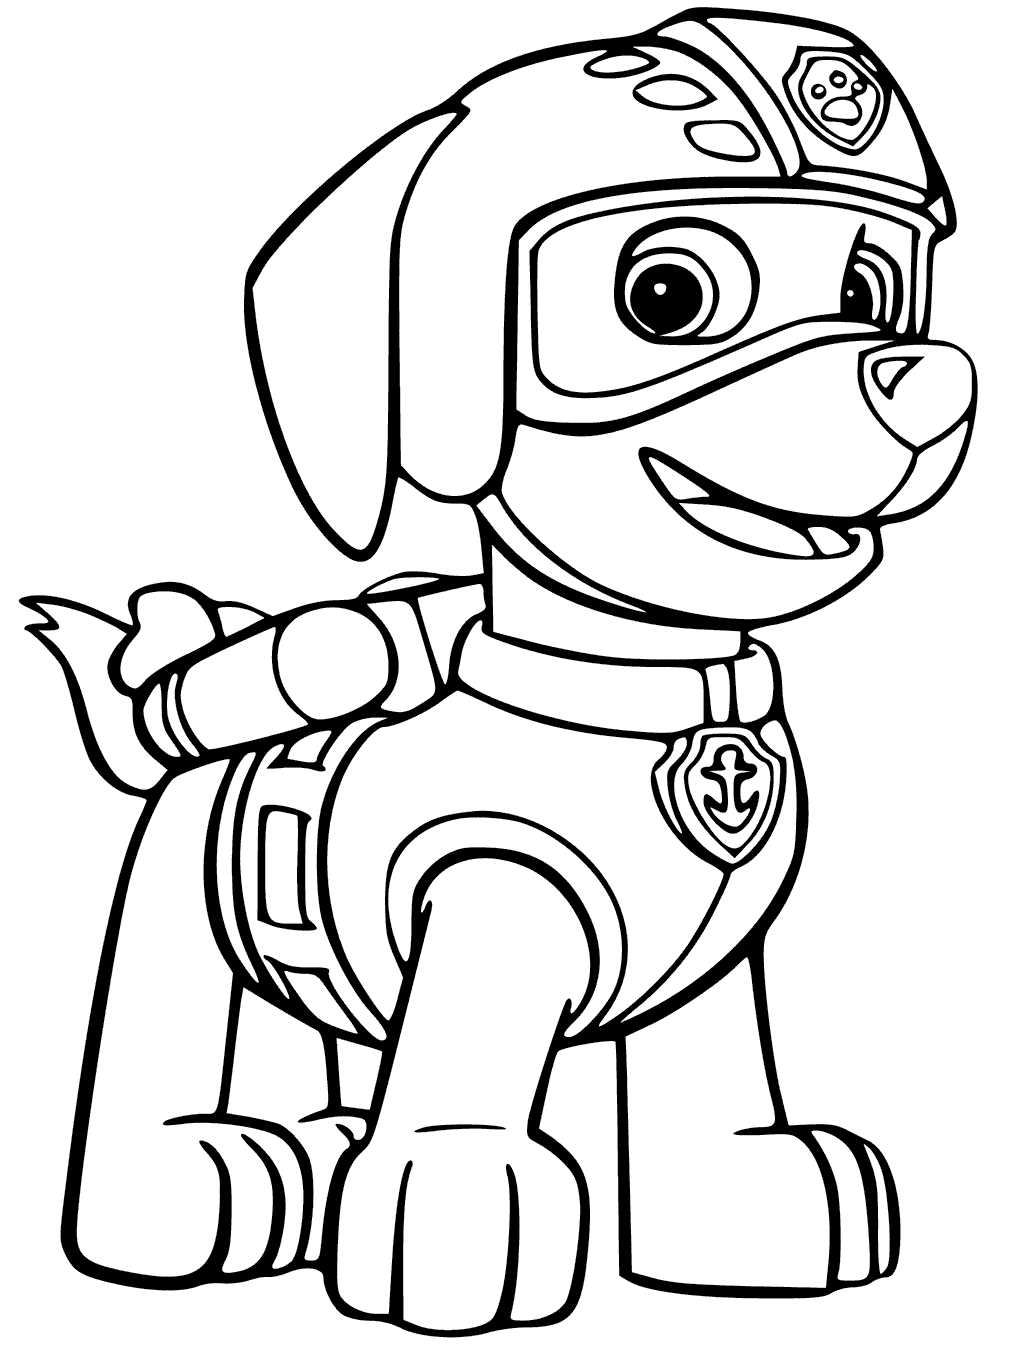 paw patrol vehicles coloring pages paw patrol pups from dino rescue coloring pages get patrol coloring pages paw vehicles